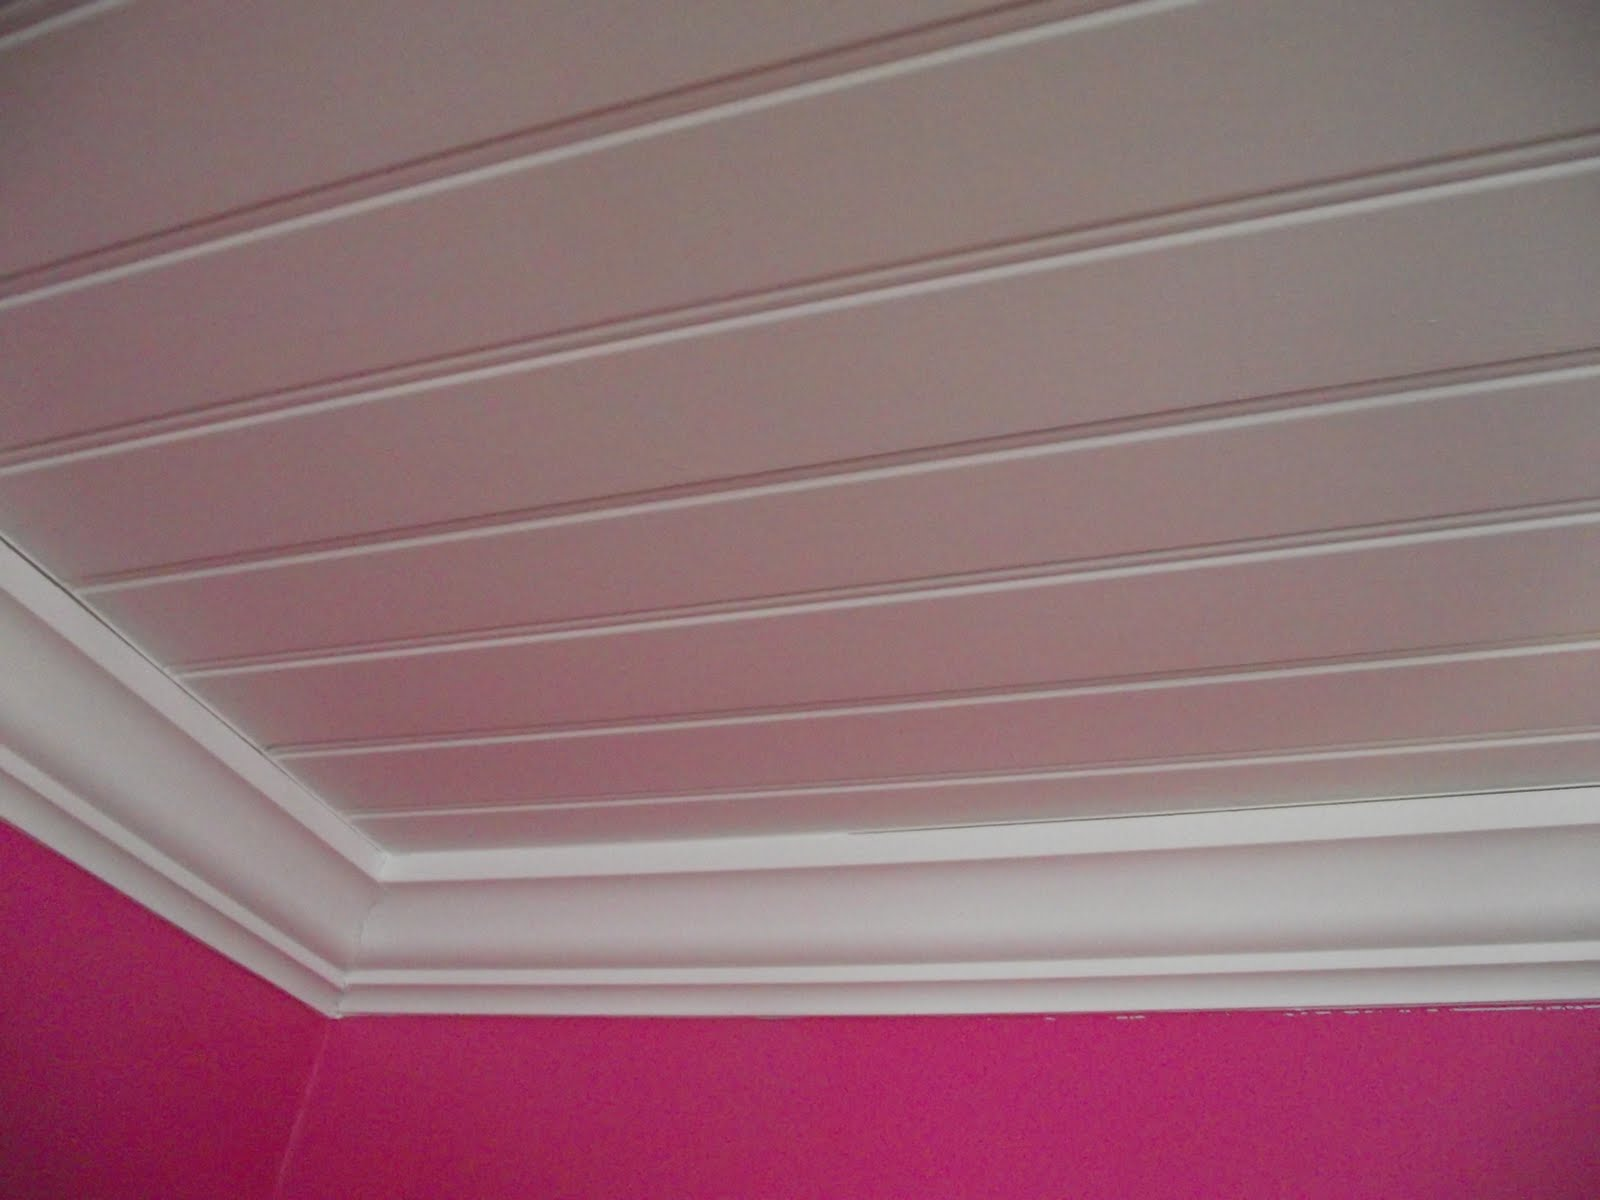 Pvc Beadboard Sheets Lowes Interior Vinyl Soffit. Vinyl Wainscoting Lowes   Wainscoting